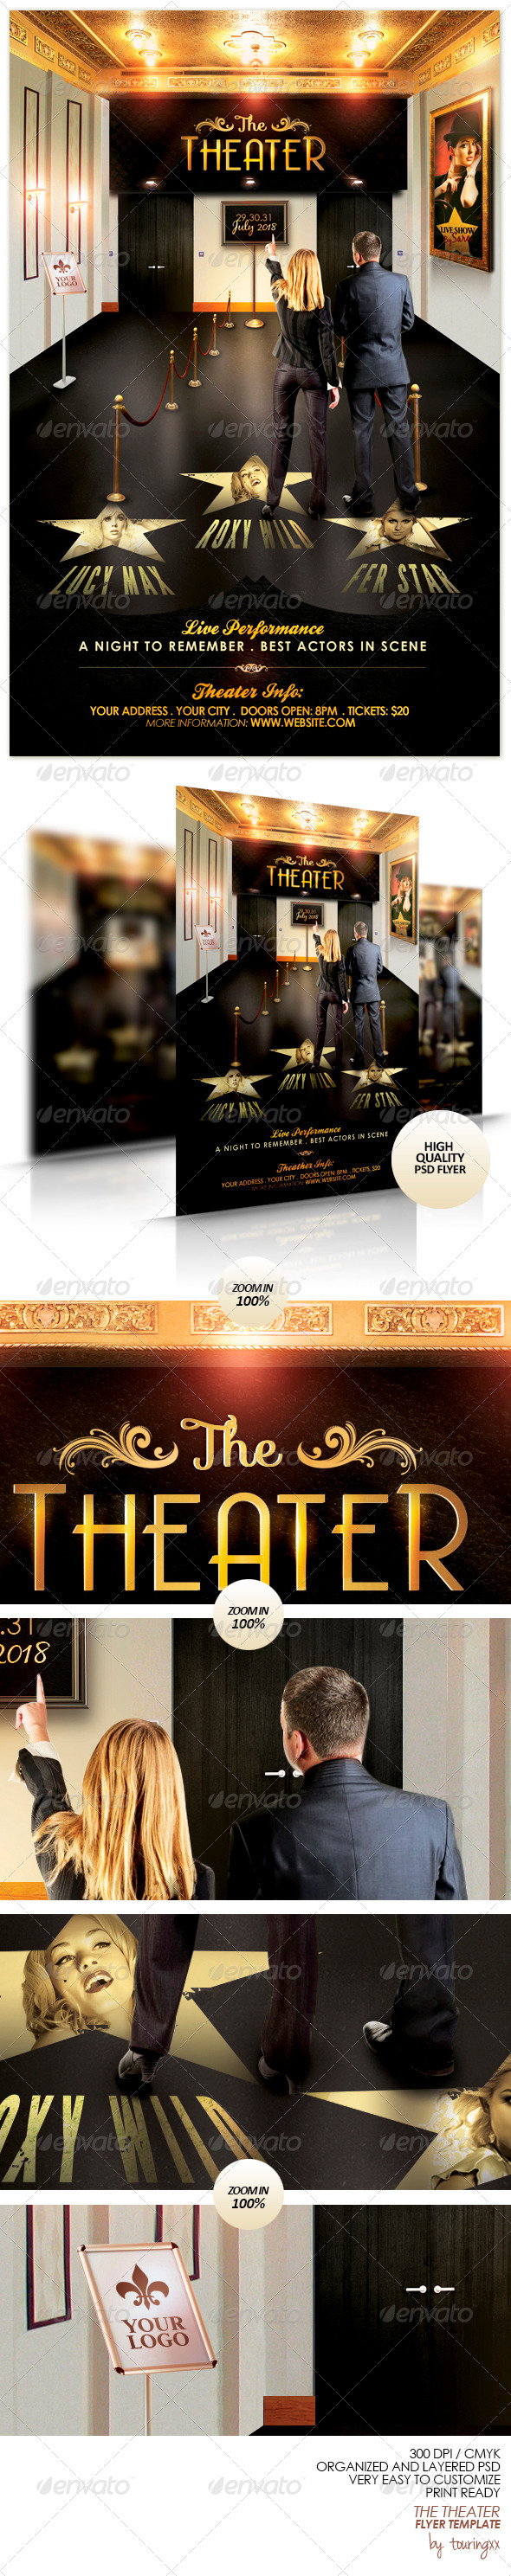 The Theater Flyer Template - Flyers Print Templates